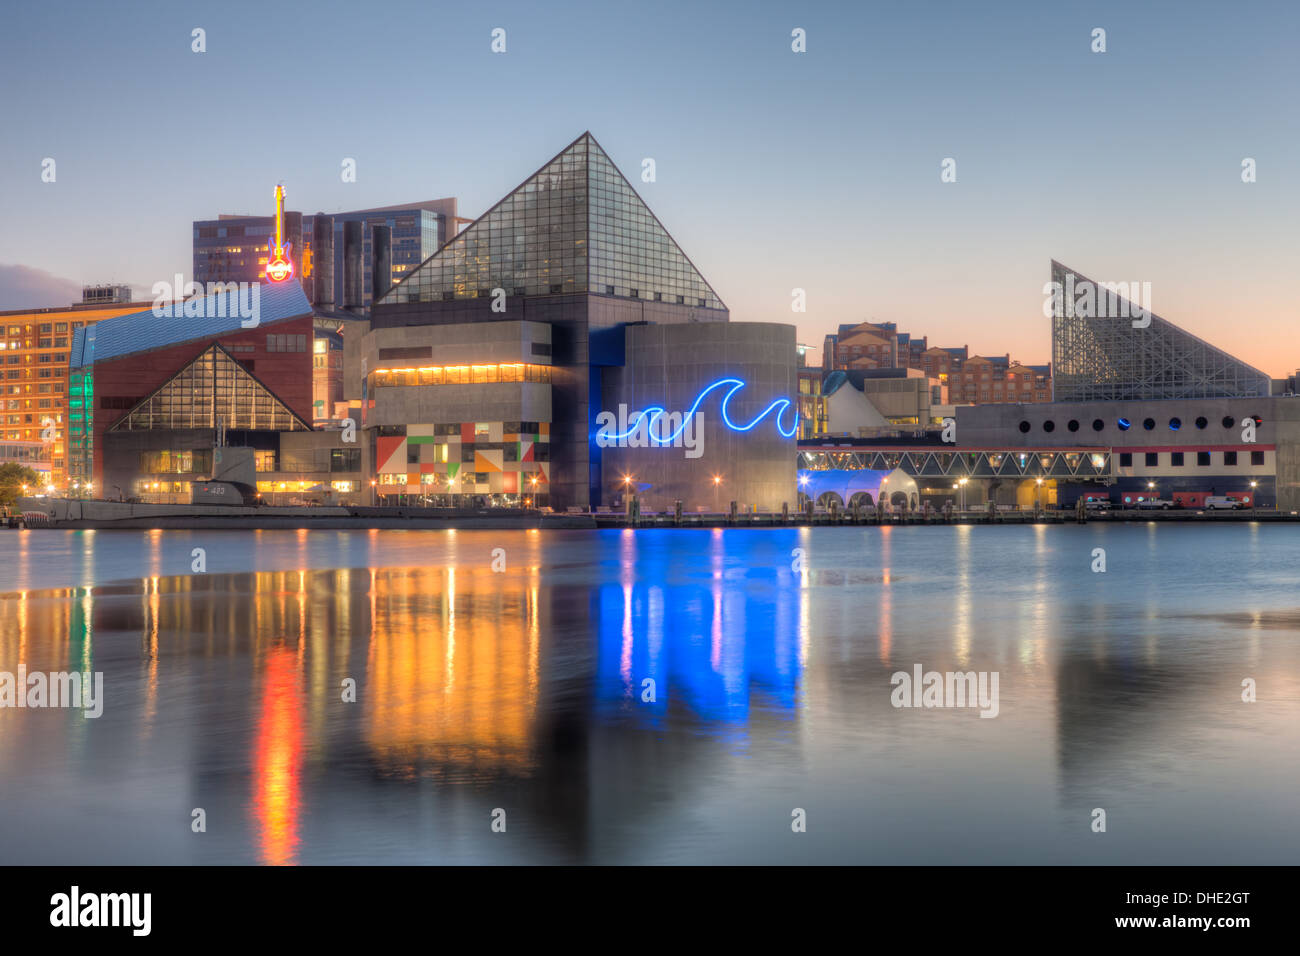 The Baltimore National Aquarium reflects off the waters of the Inner Harbor before sunrise in Baltimore, Maryland. - Stock Image